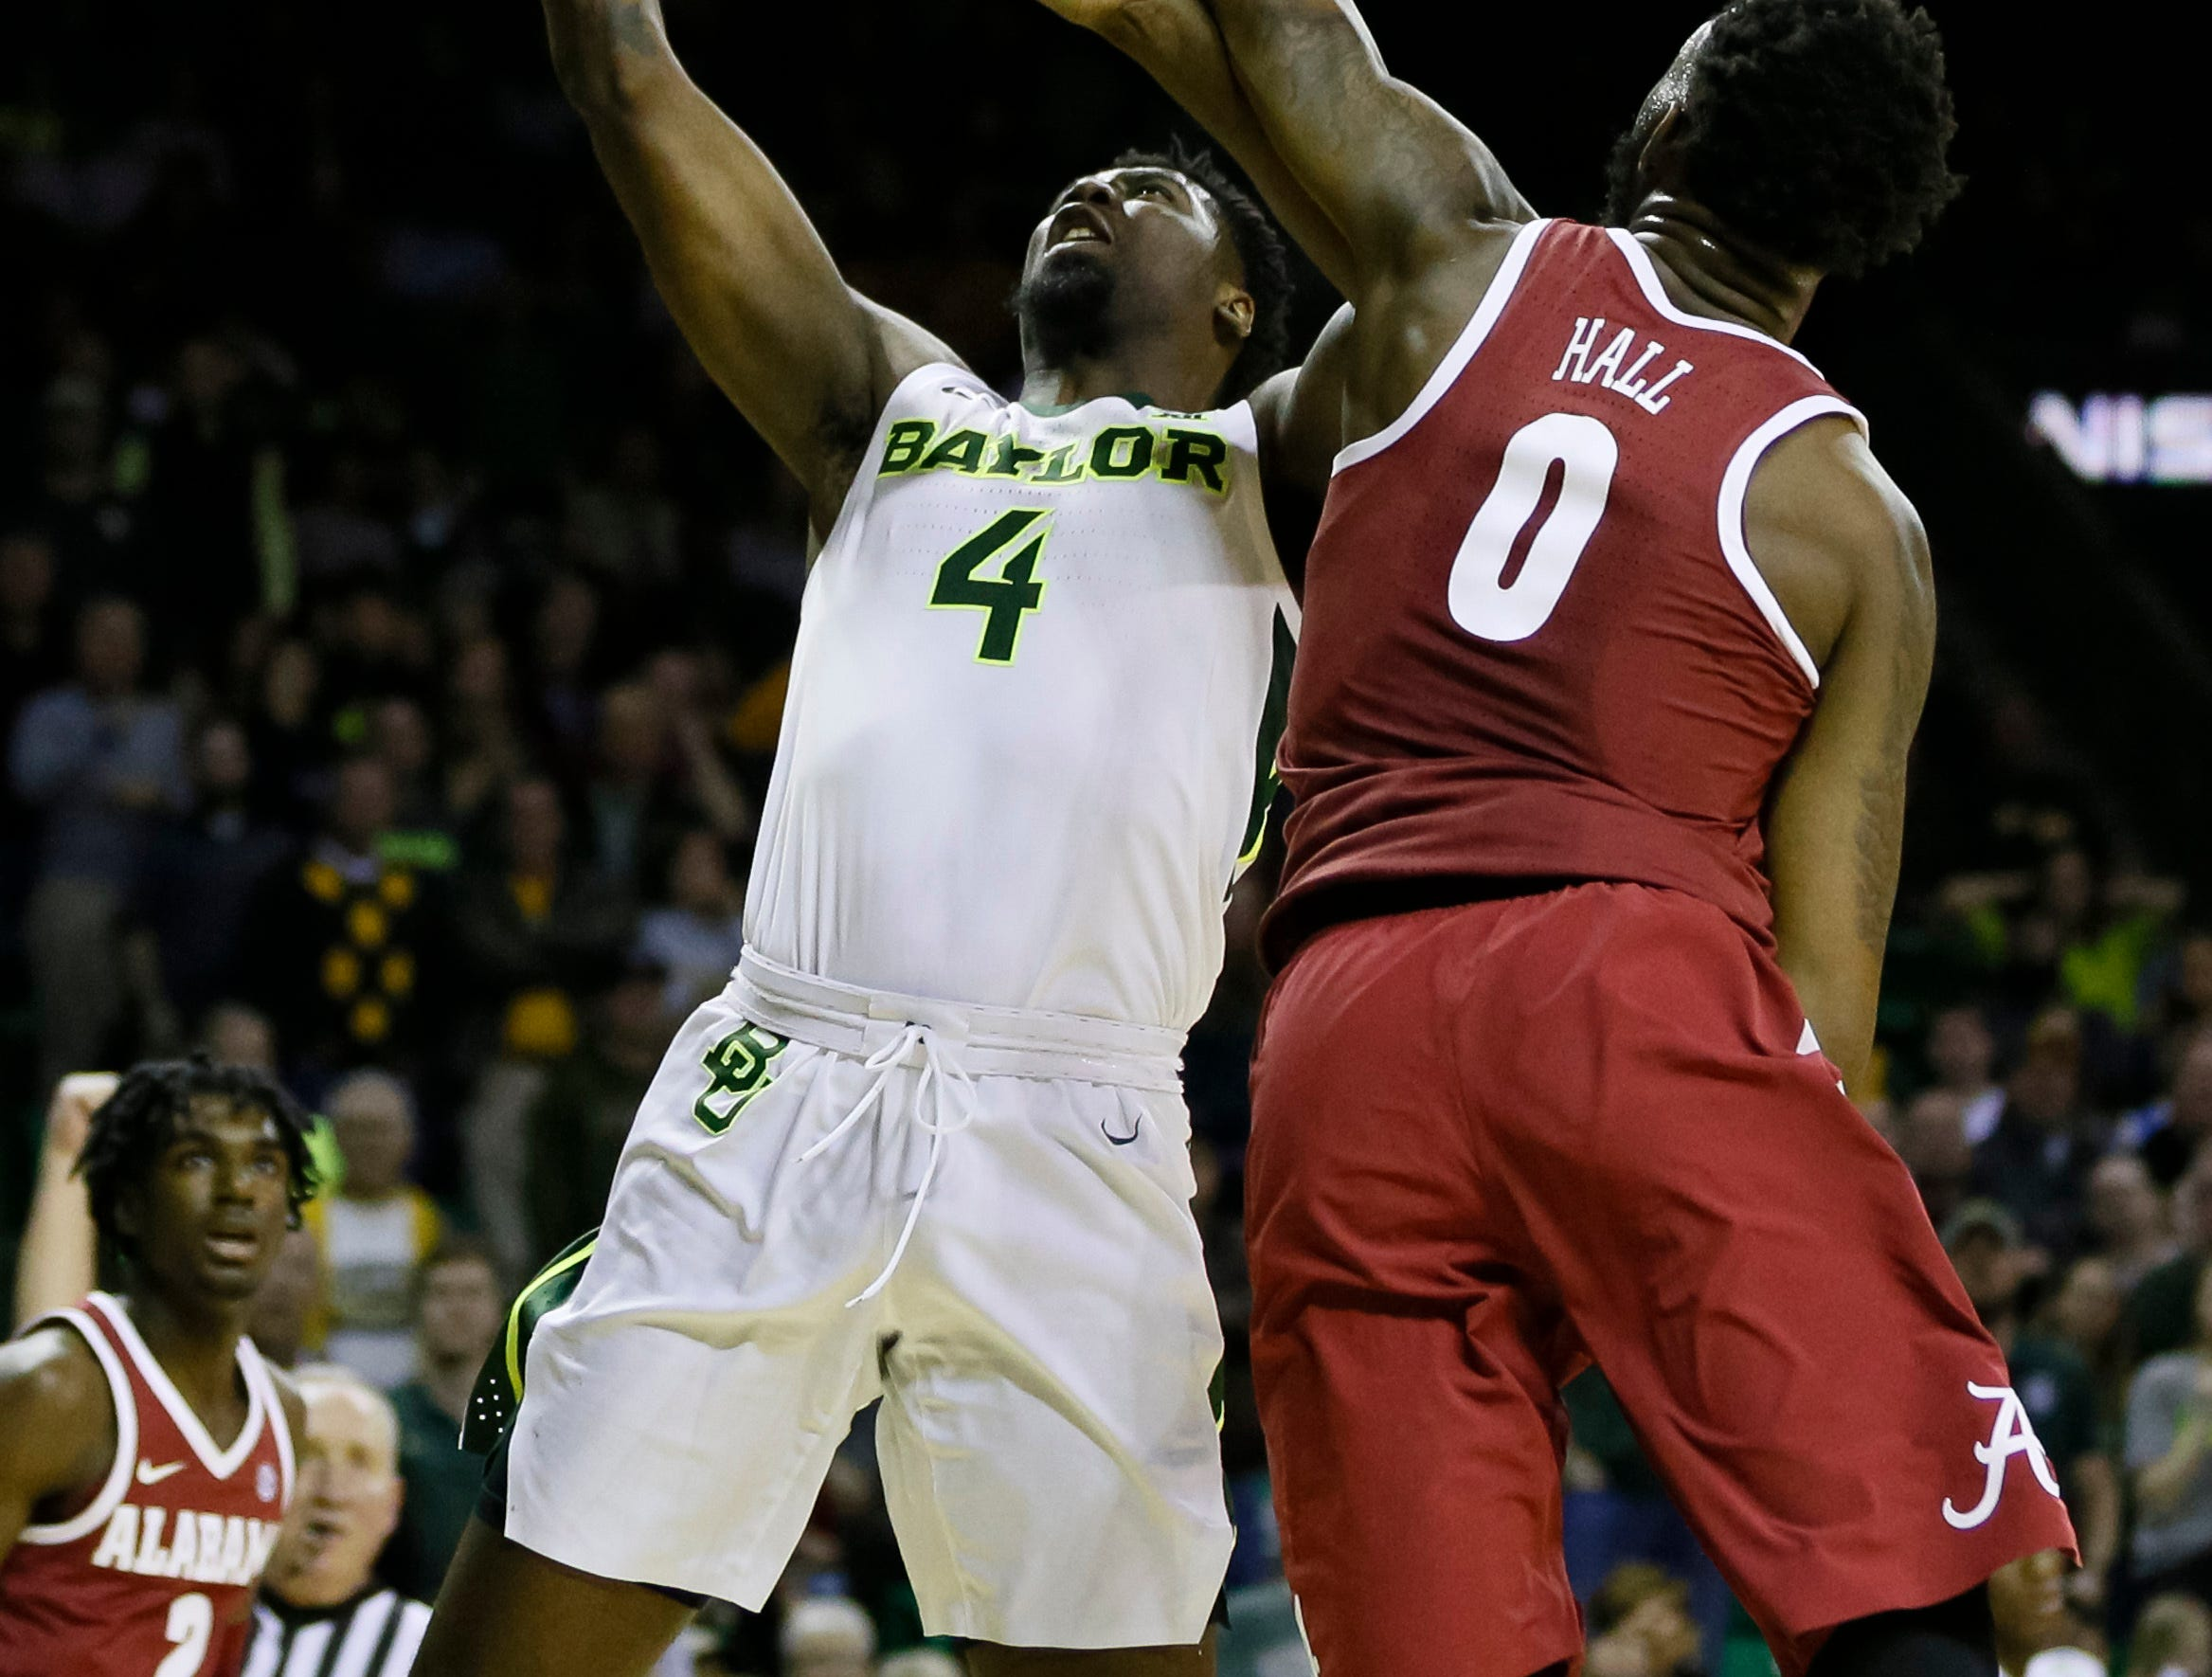 Jan 26, 2019; Waco, TX, USA; Baylor Bears guard Mario Kegler (4) takes the ball to the basket on Alabama Crimson Tide forward Donta Hall (0) during the second half at Ferrell Center. Mandatory Credit: Ray Carlin-USA TODAY Sports